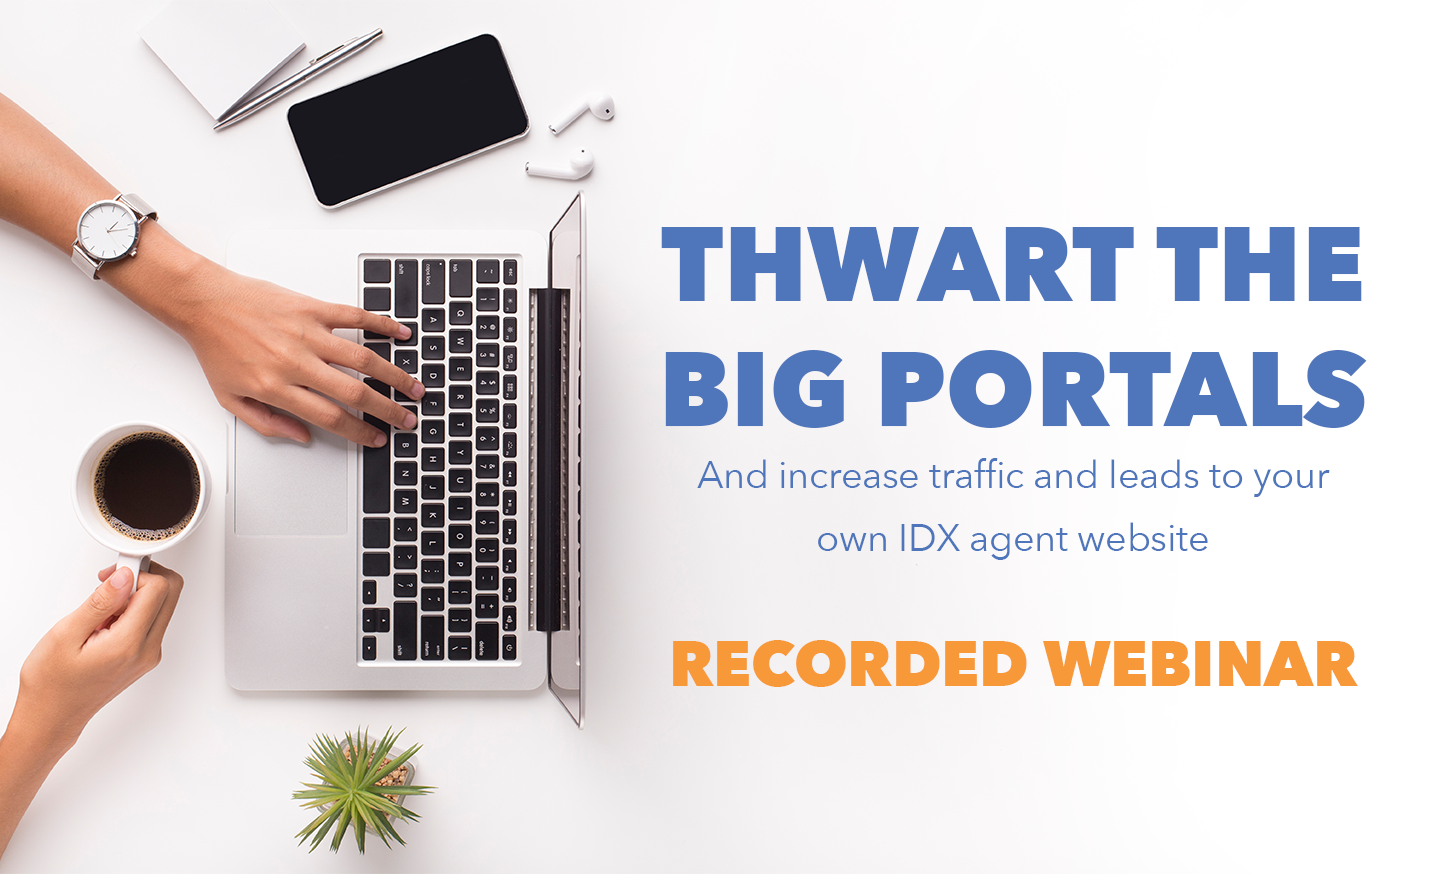 Recorded Webinar Thwart The Big Portals and Increase Traffic and Leads to your own IDX agent website